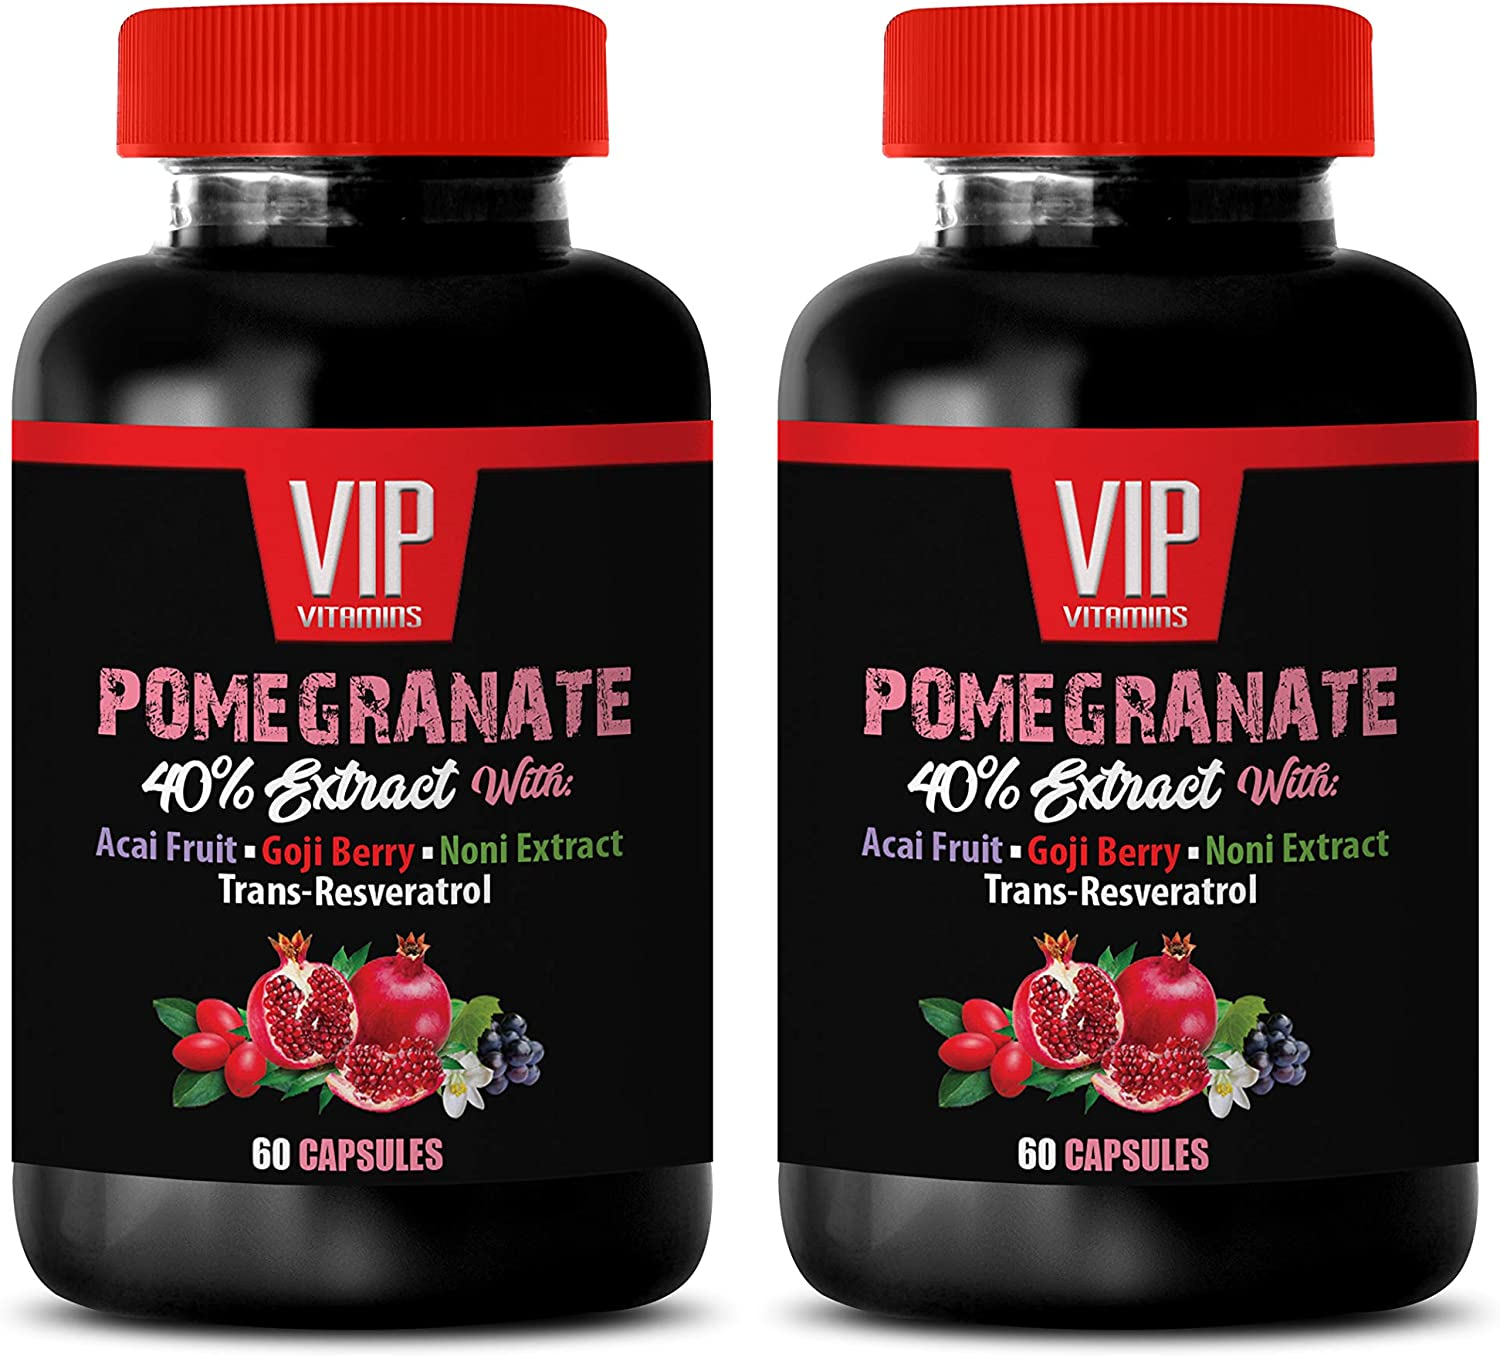 Anti inflammatory Vitamins Popular products Outlet ☆ Free Shipping - with Extract Formula Pomegranate